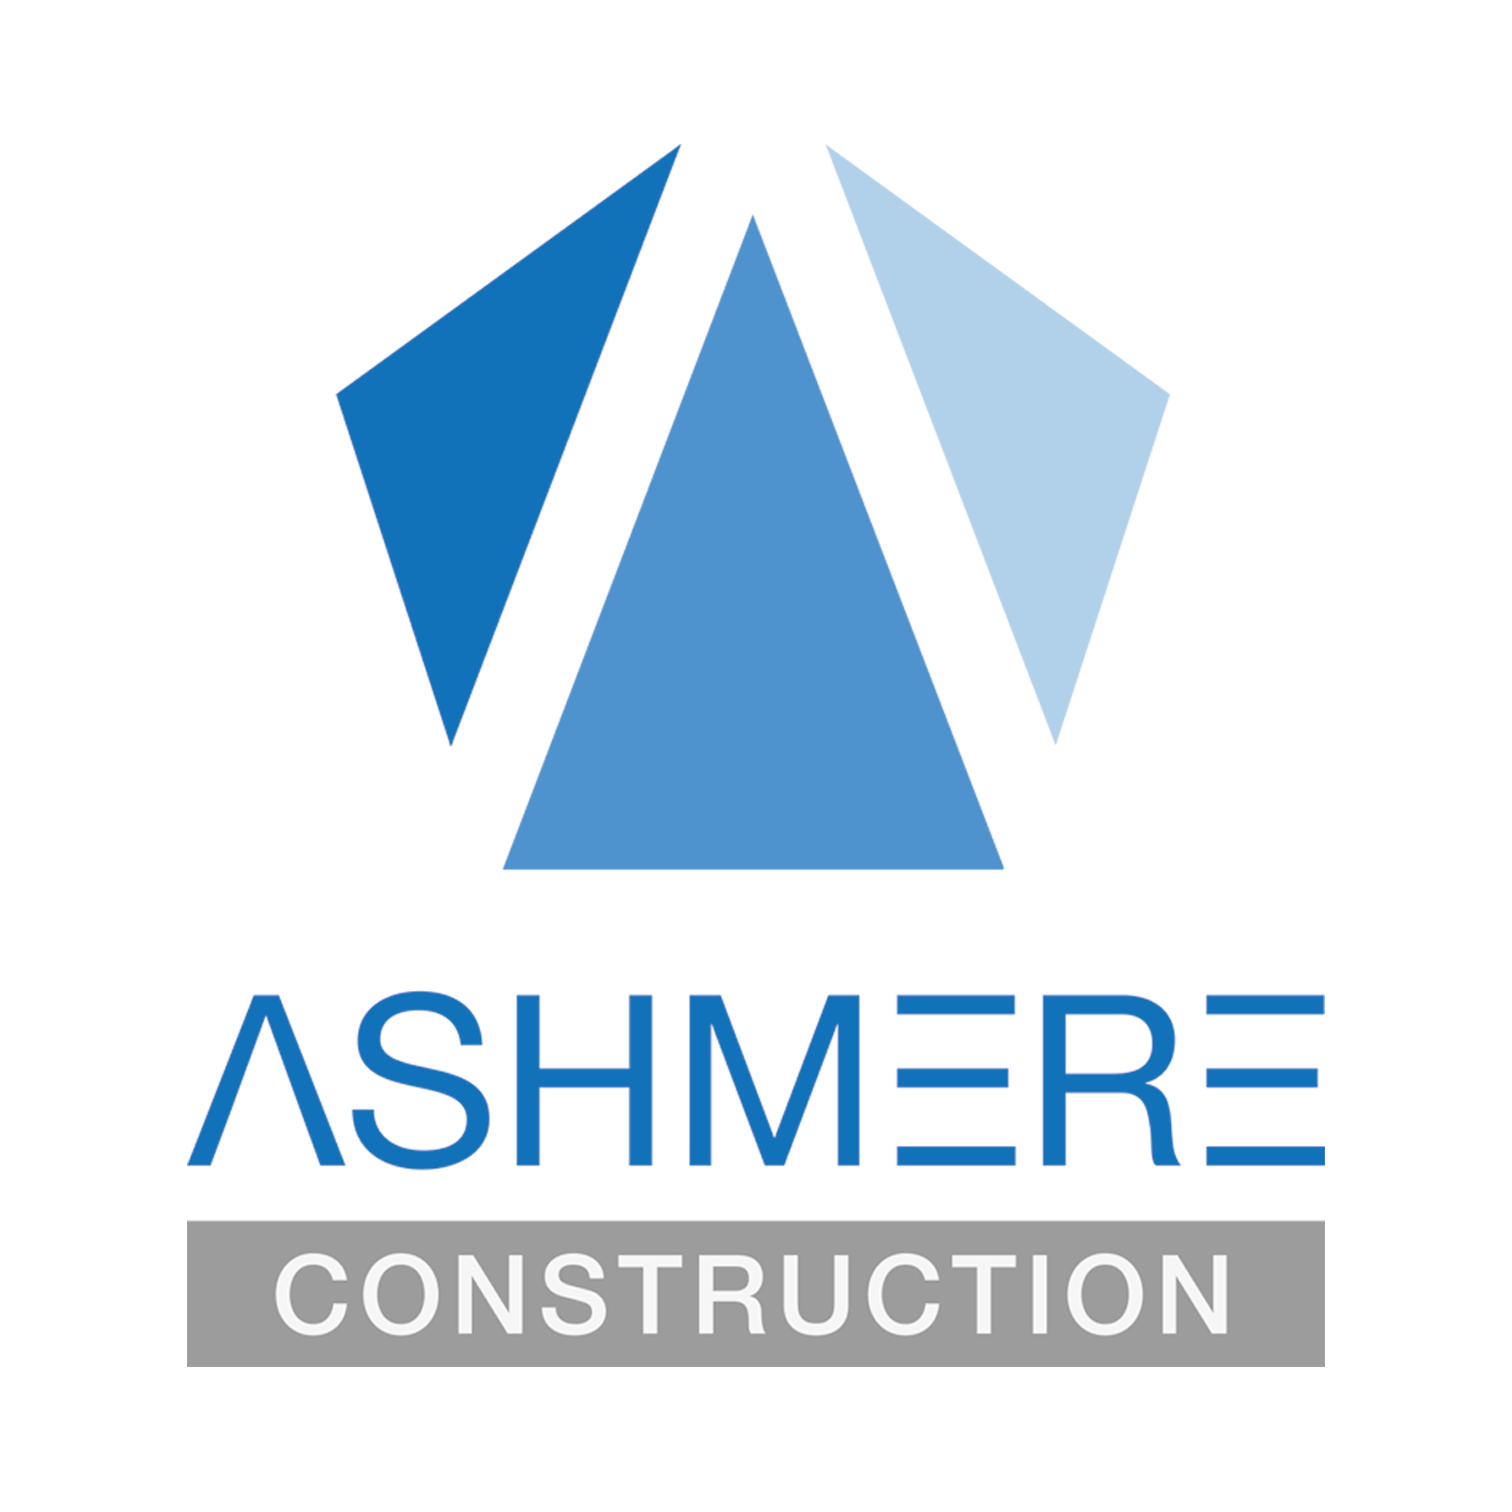 ashmere construction logo